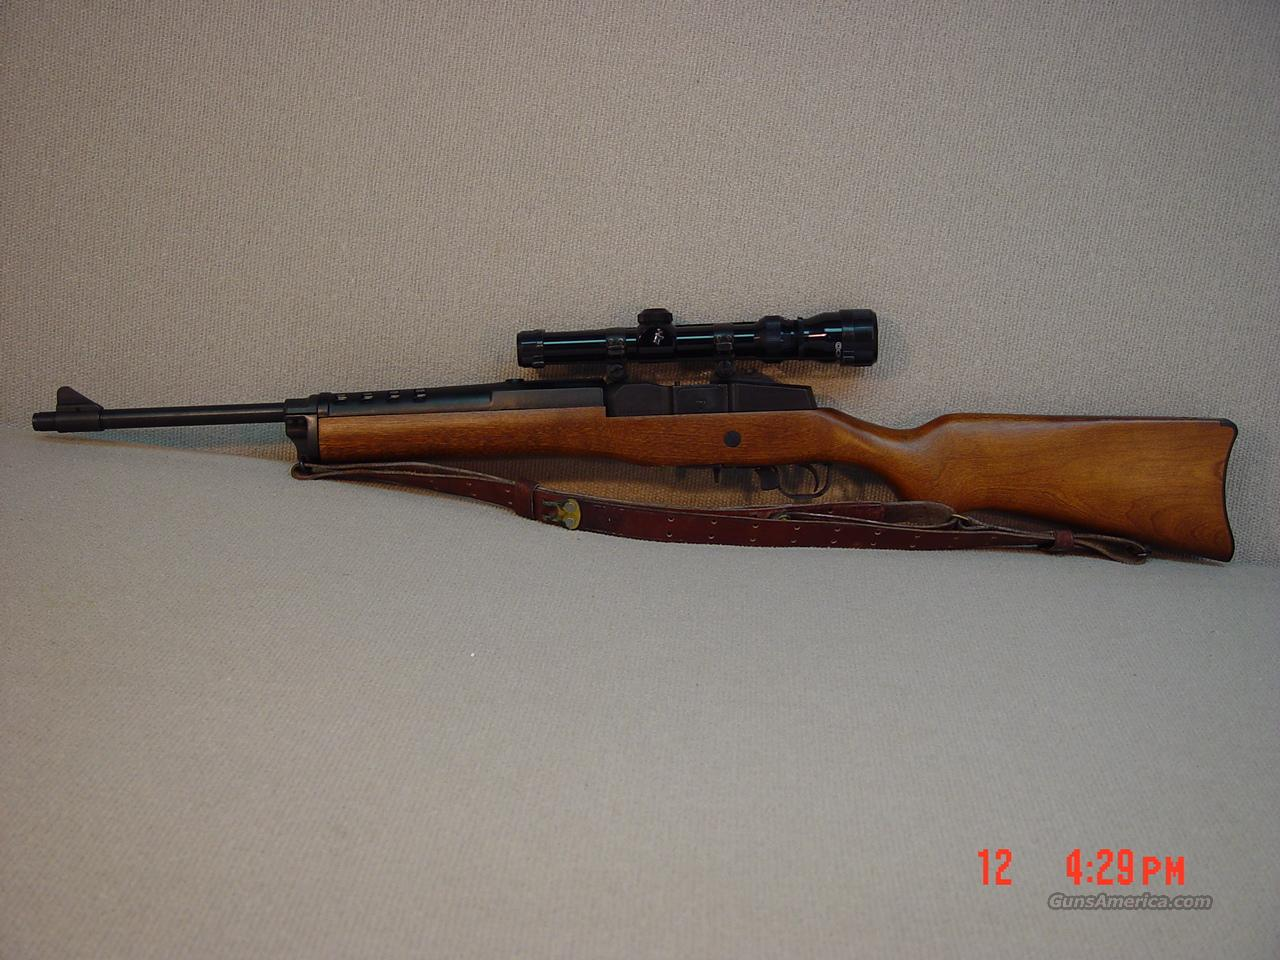 RUGER MINI 30 RANCH RIFLE with SCOPE 7.63X39  Guns > Rifles > Ruger Rifles > Mini-14 Type